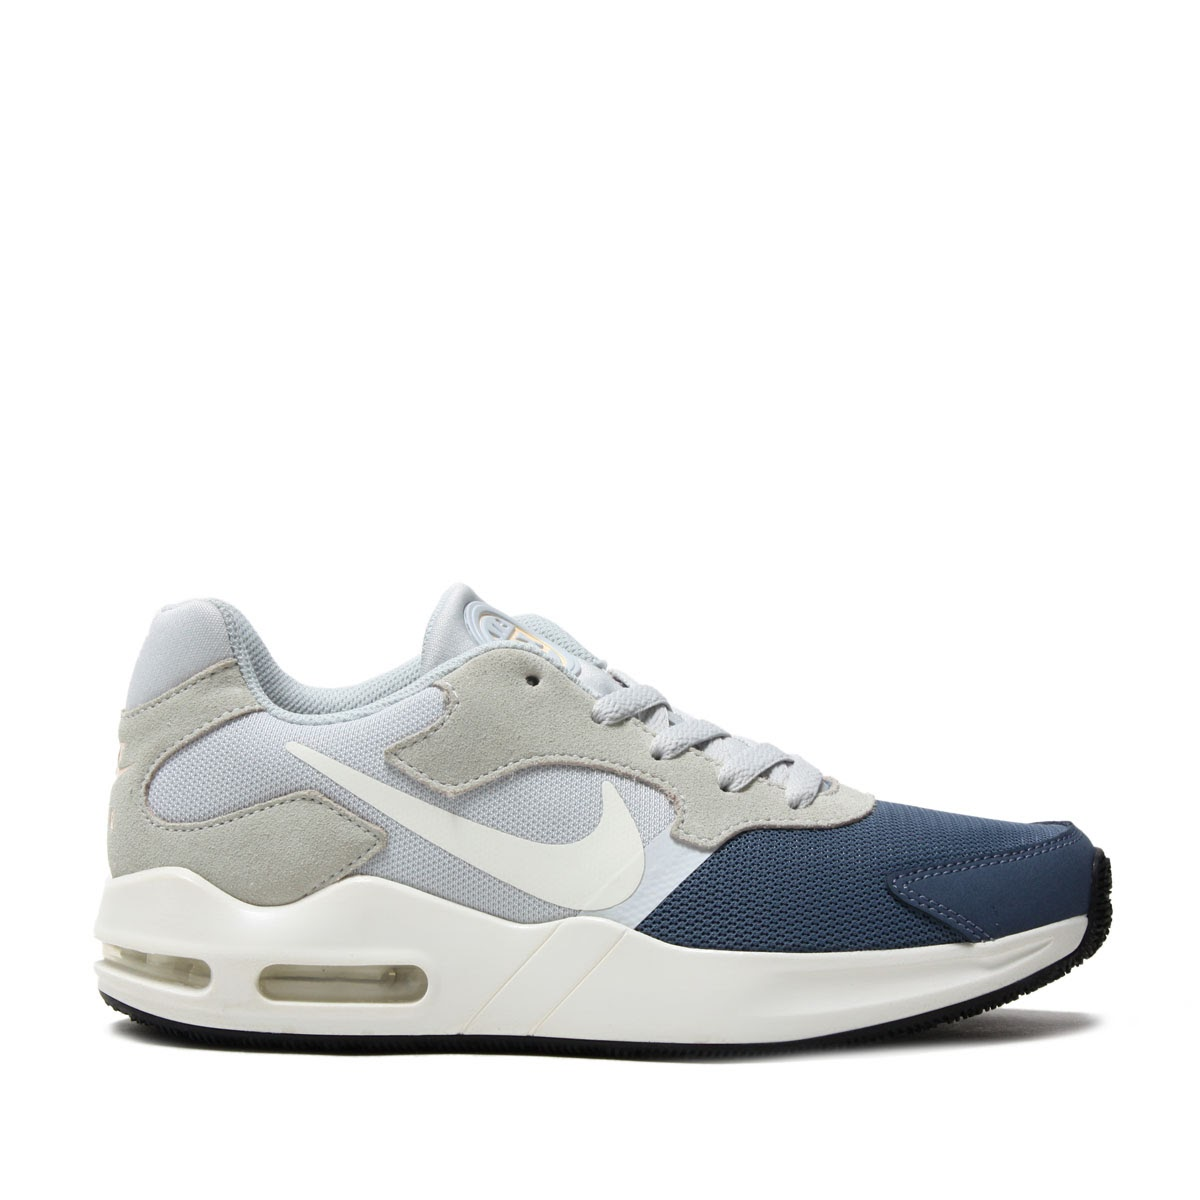 separation shoes 226c4 ad646 ... NIKE WMNS AIR MAX GUILE (Nike women air Mac Suga yl) ARMORY BLUE  ...